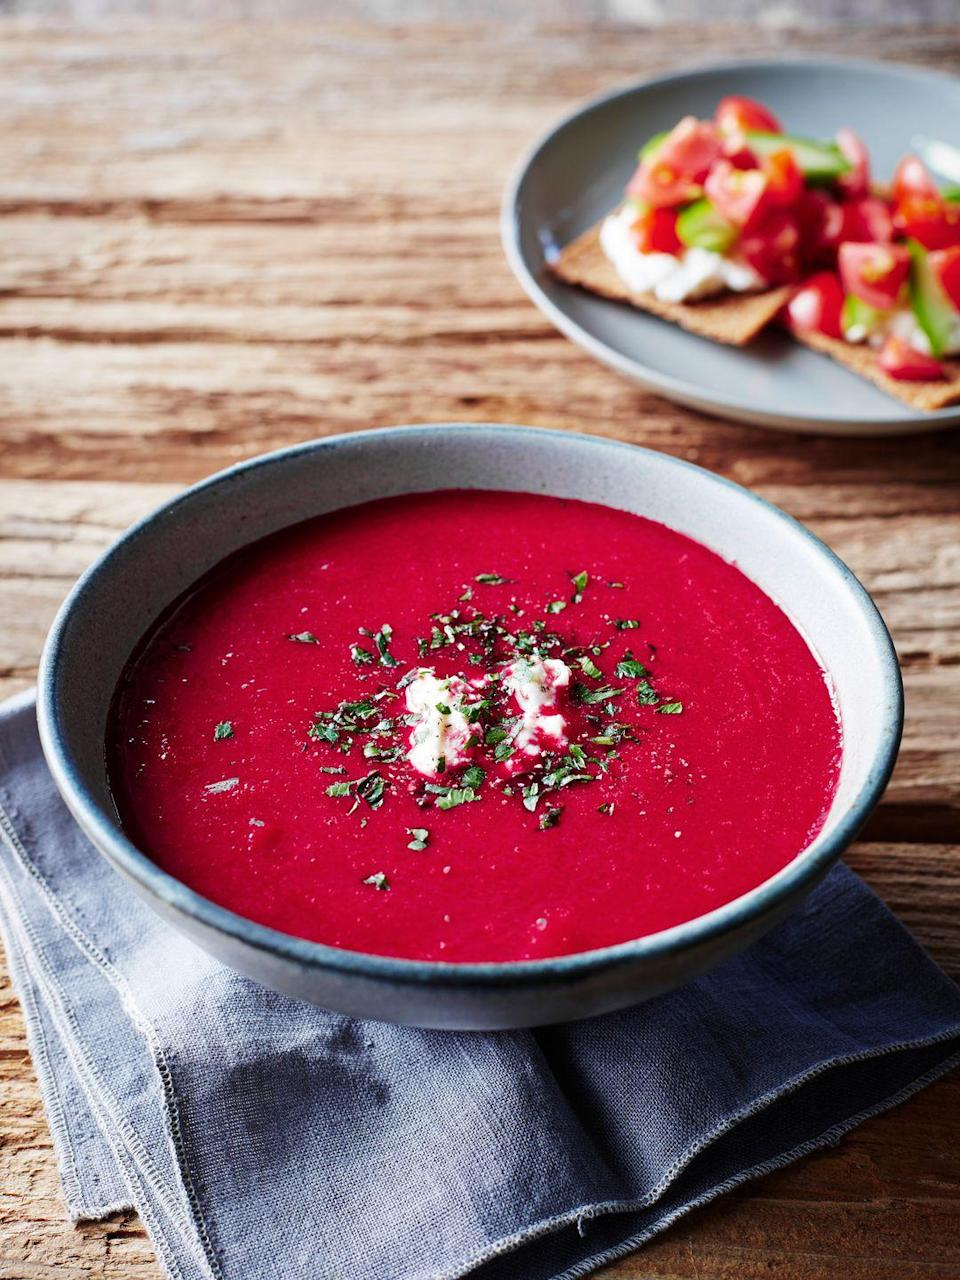 "<p>Vibrant both in color and in flavor, this soup works well for lunch or as a suppertime starter.</p><p><strong><a href=""https://www.countryliving.com/food-drinks/recipes/a1773/beet-apple-soup-3895/"" rel=""nofollow noopener"" target=""_blank"" data-ylk=""slk:Get the recipe"" class=""link rapid-noclick-resp"">Get the recipe</a>.</strong></p>"